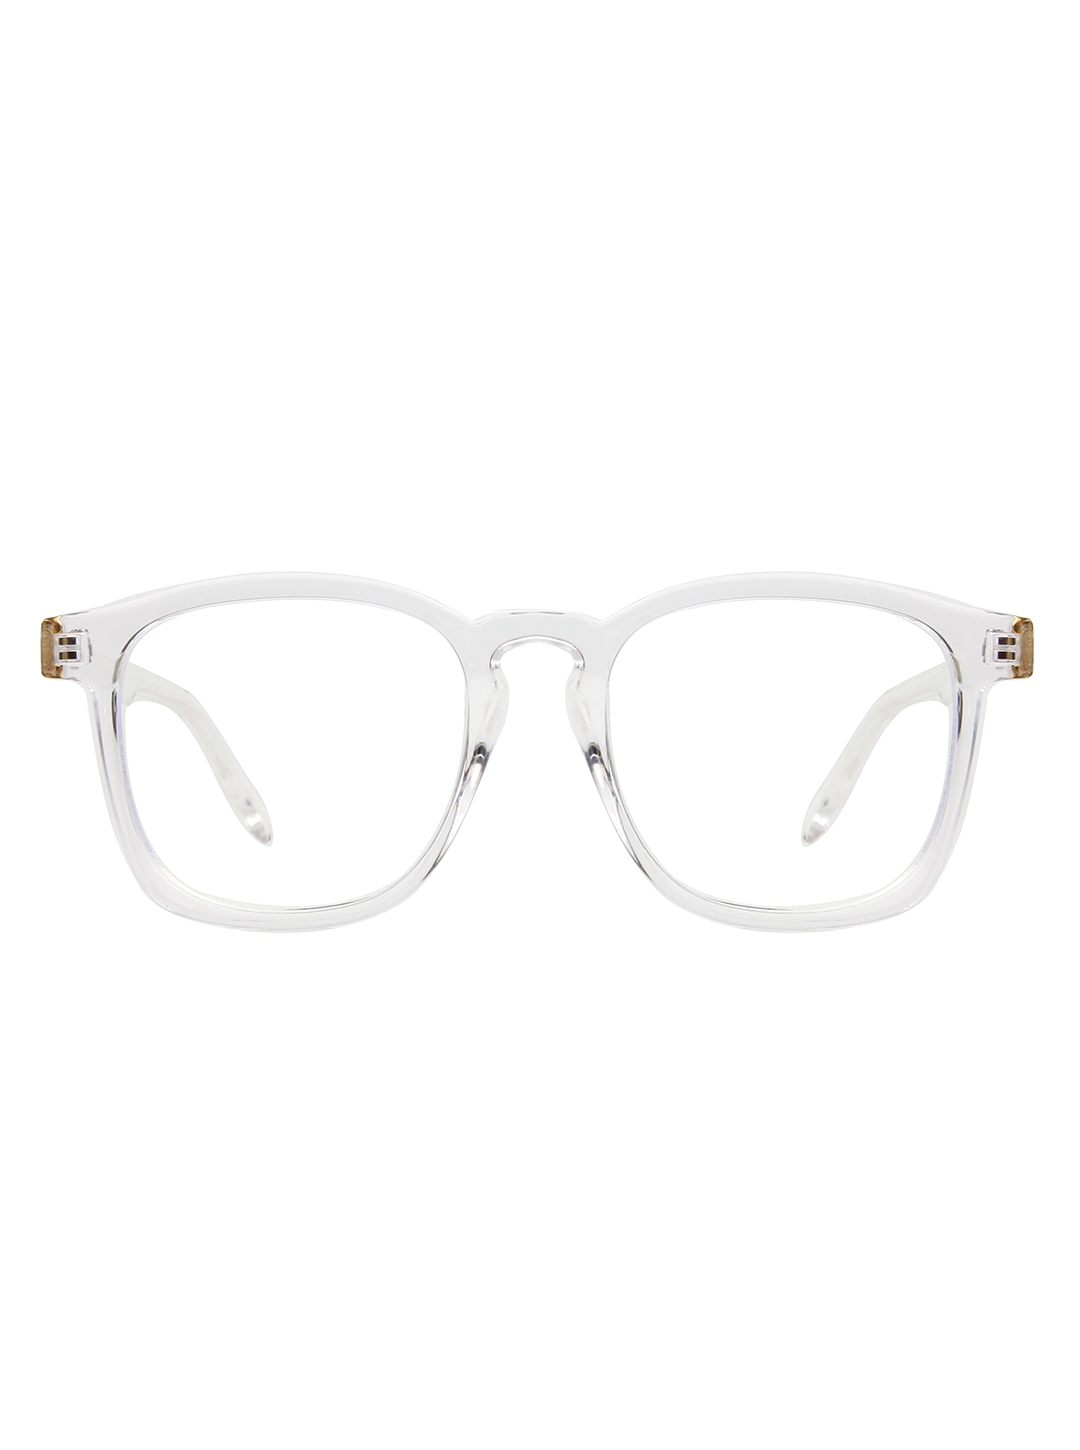 Sleek Square Sunglasses -Clear - Front